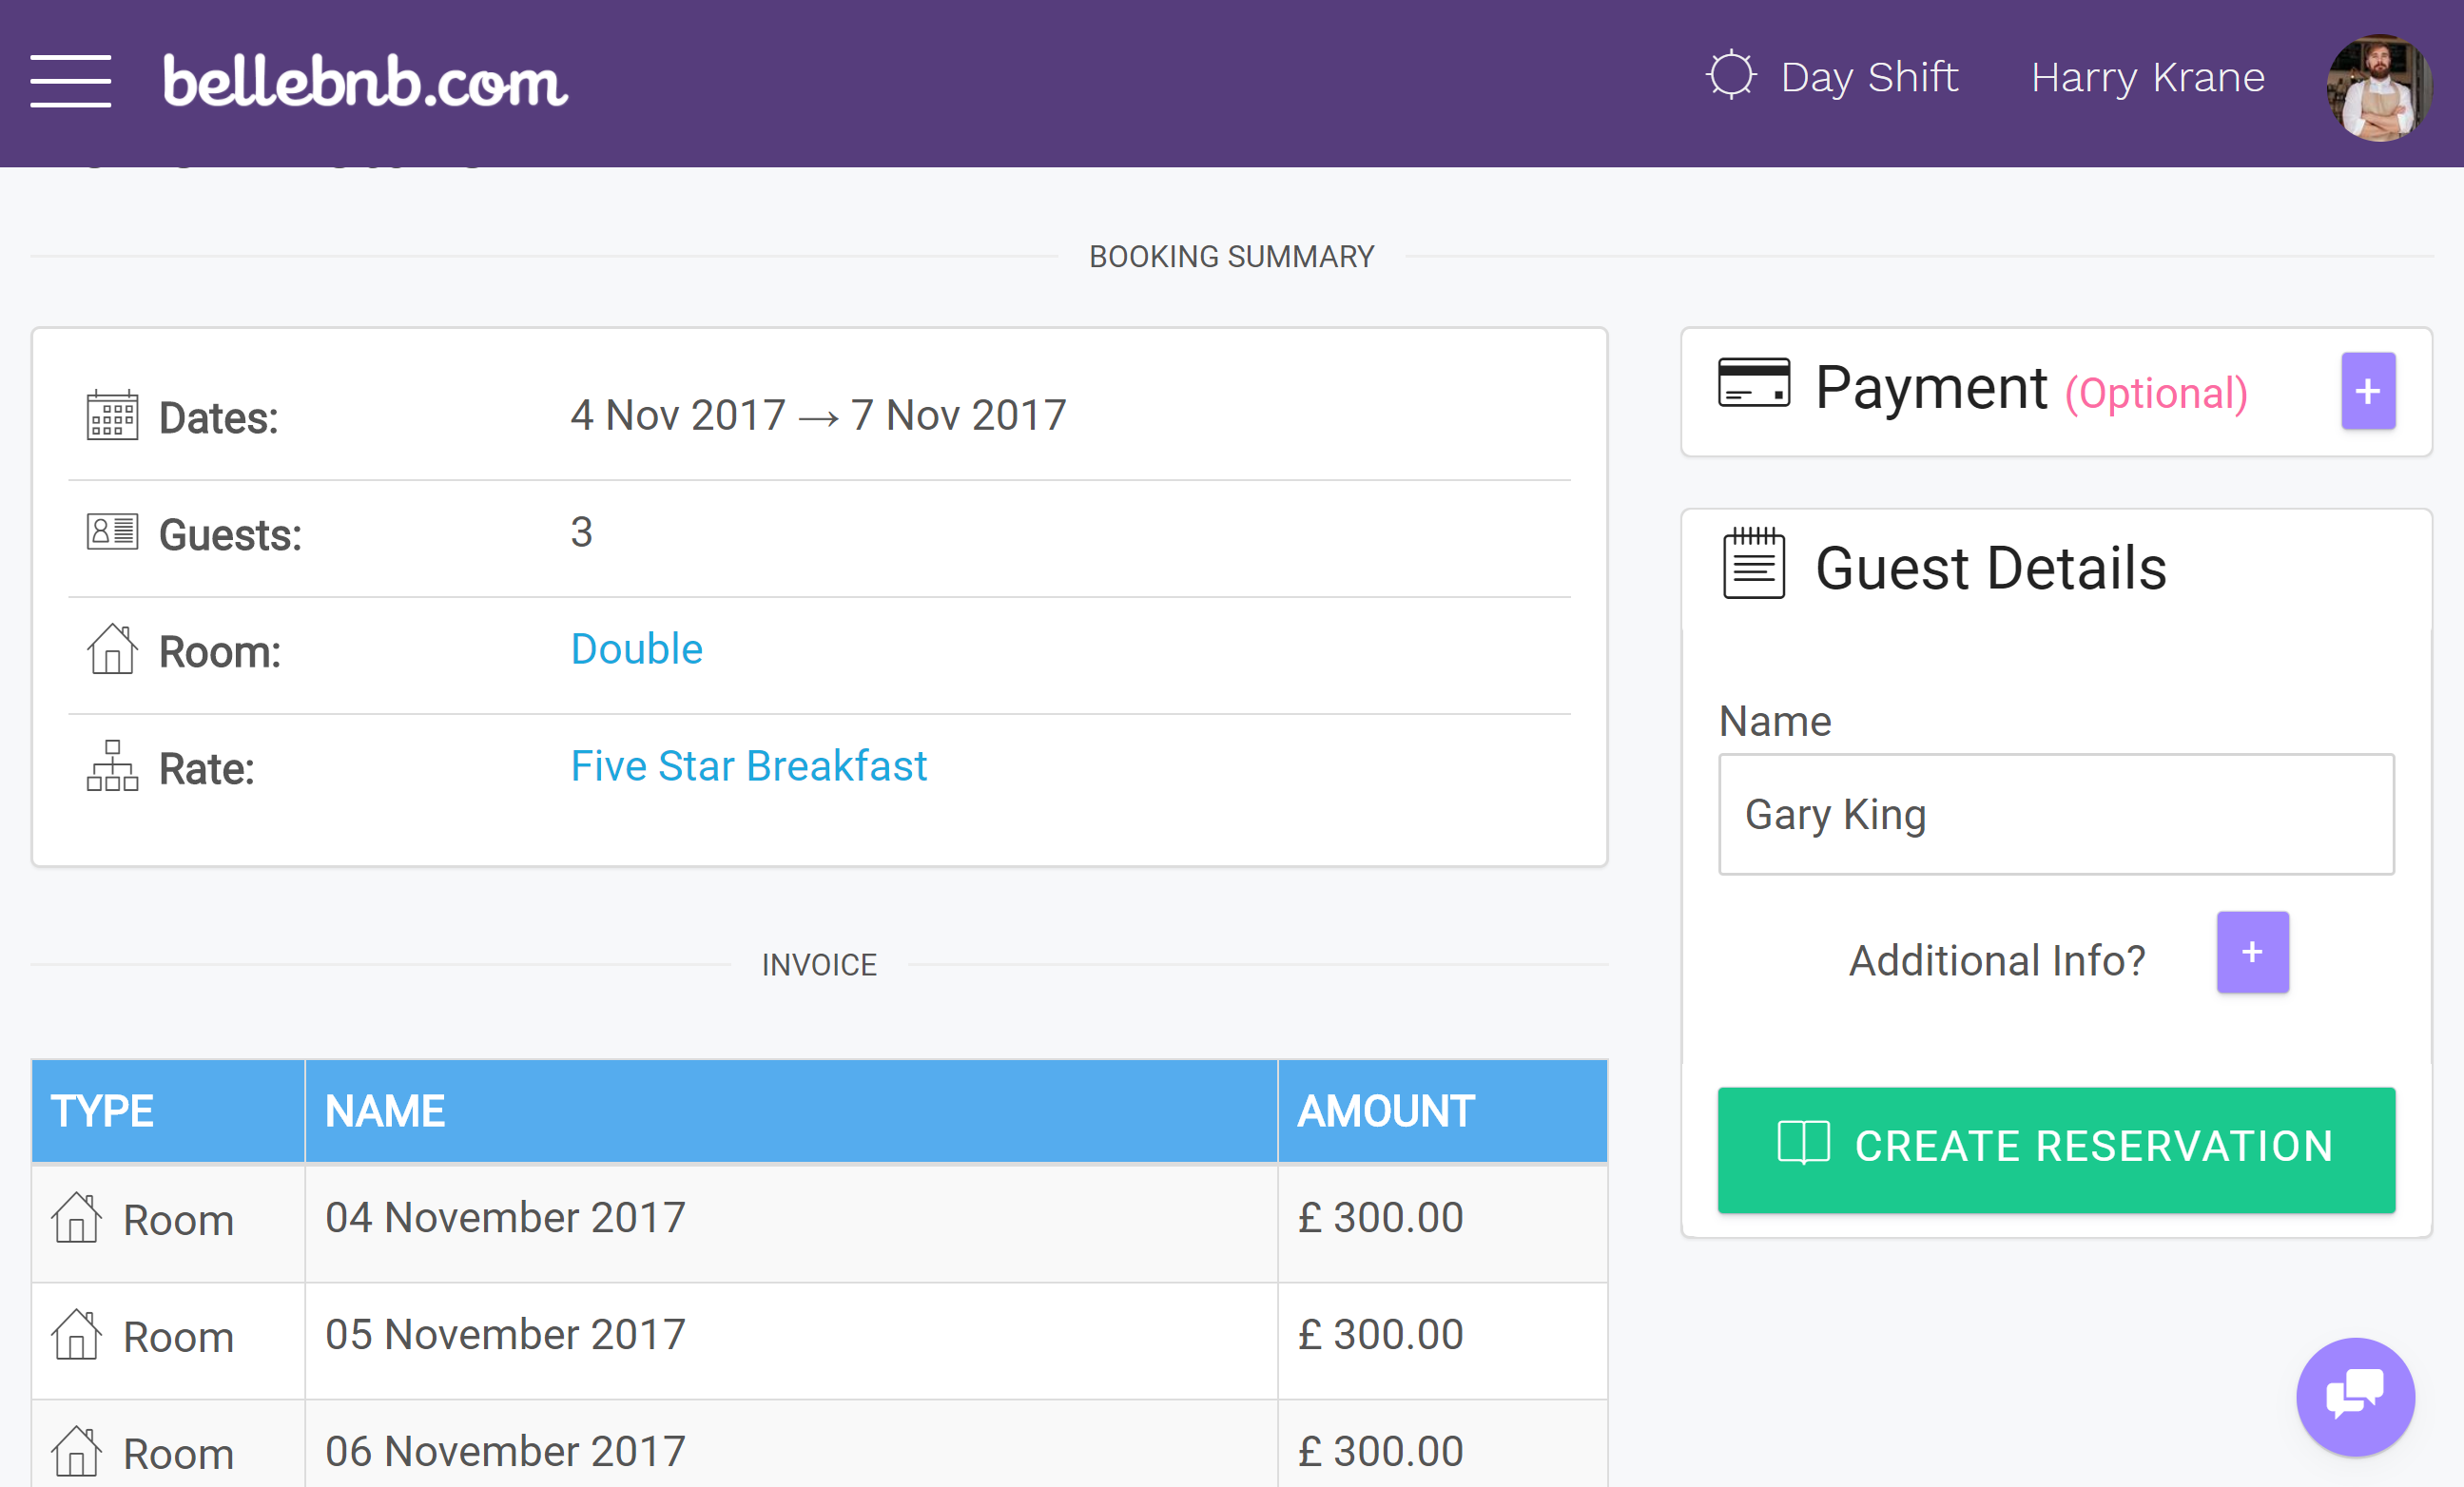 Hotel Drag & Drop Front Desk Reservation Calendar Your reservations calendar has been updated to make it even easier to manage your hotel's daily activity. You can now drag and resize to create and reschedule bookings.